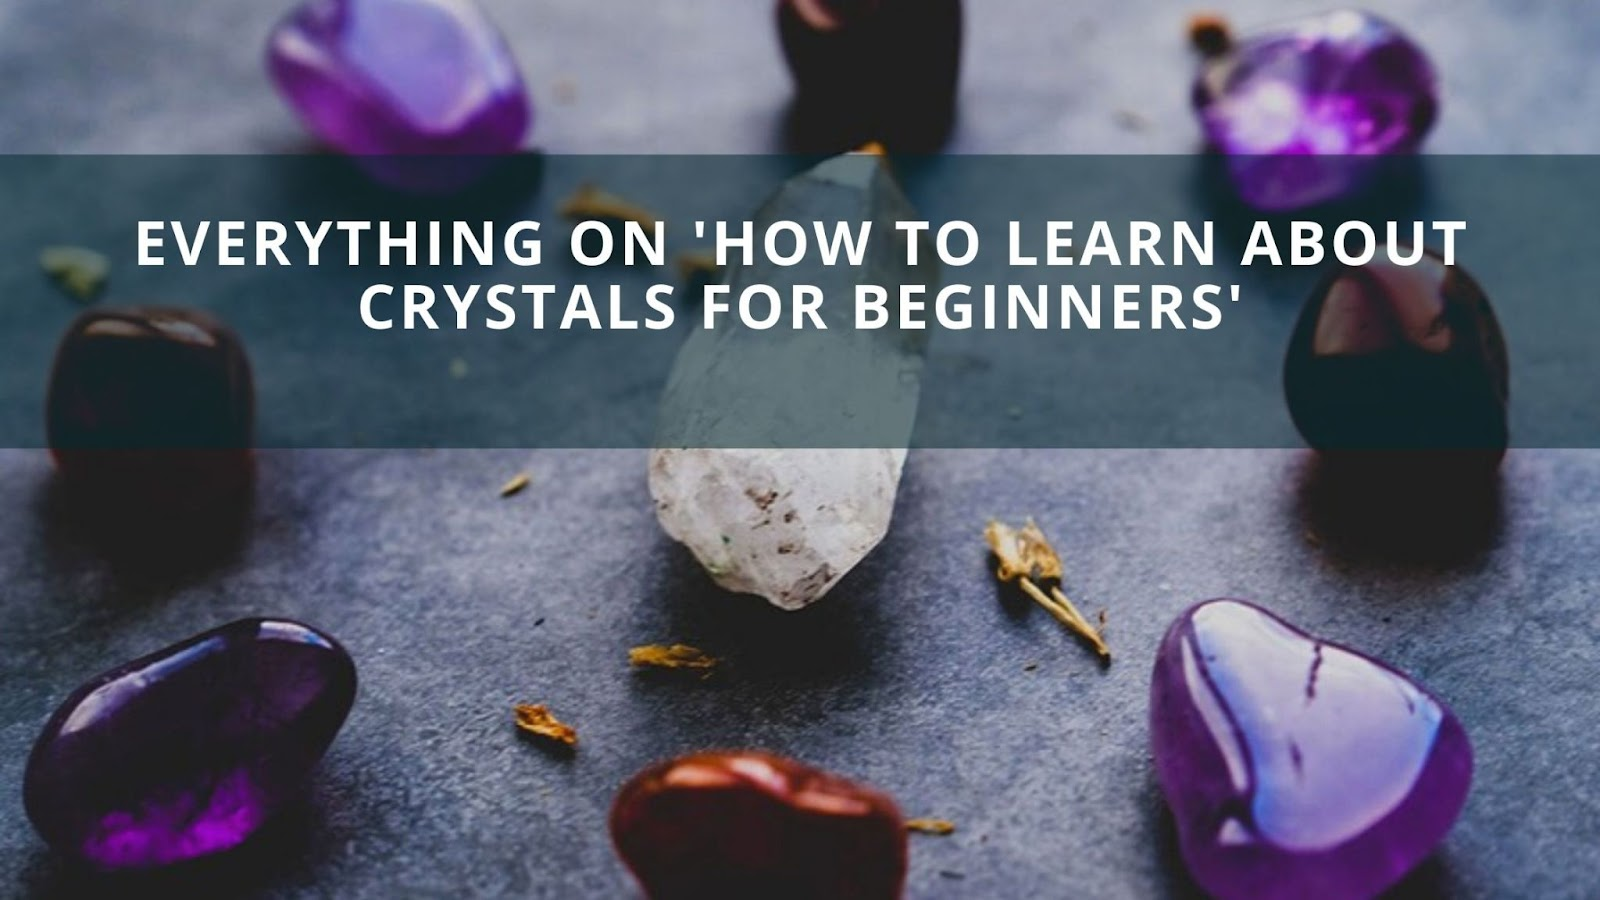 Everything on 'How To Learn About Crystals For Beginners'